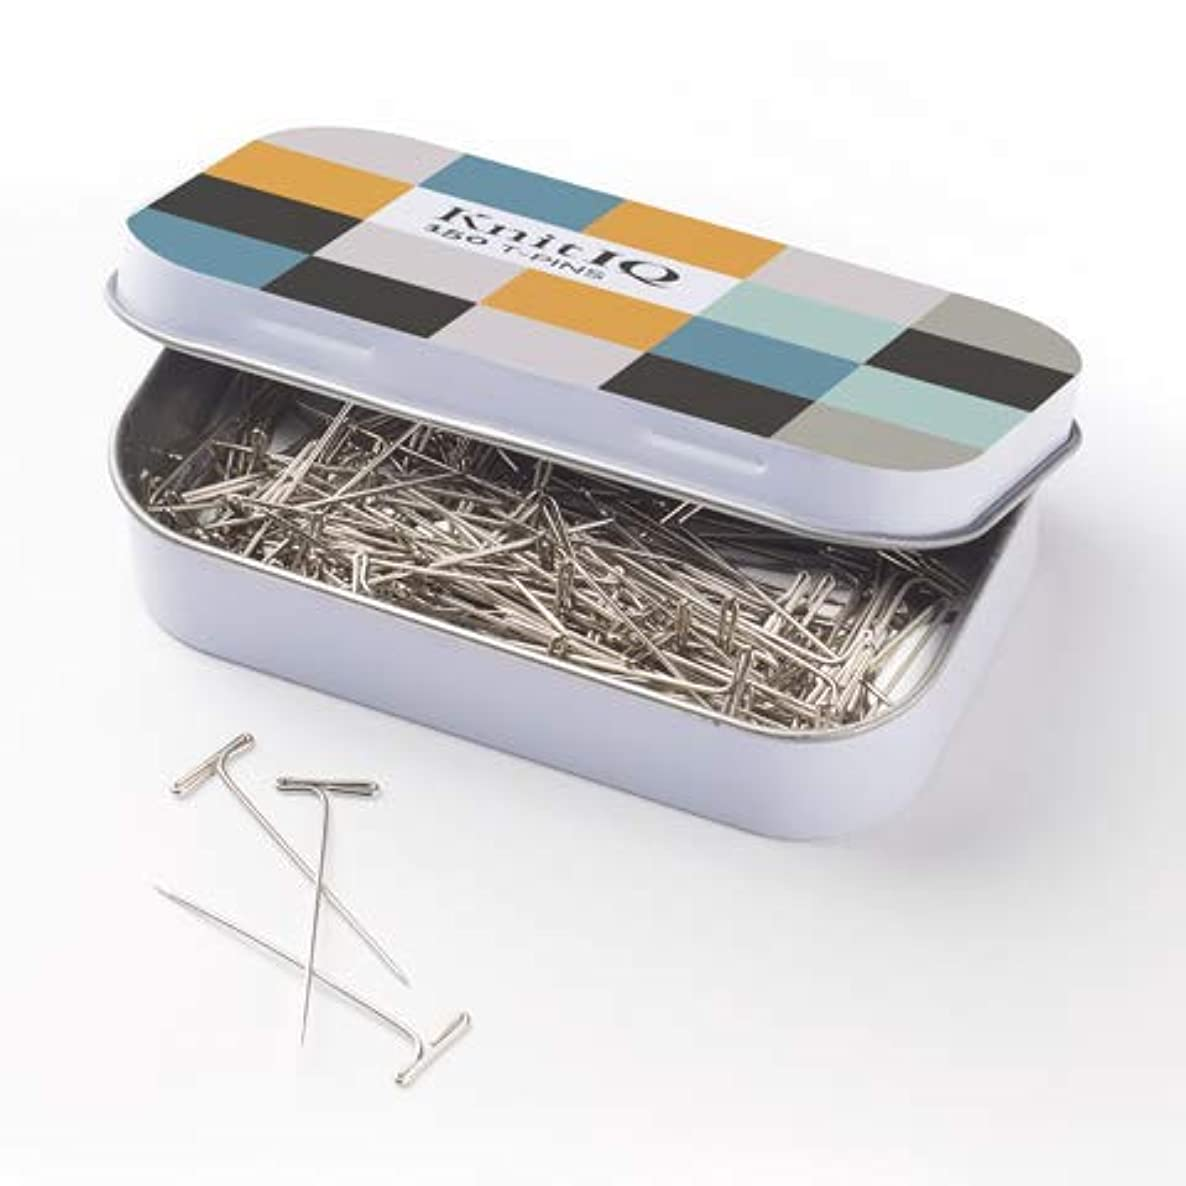 KnitIQ Strong Stainless Steel T-Pins for Blocking, Knitting & Sewing | 150 Units, 1.5 Inch -Pin Needles | Comes with Hinged Reusable Tin (Checkered Design) amxt1382890979